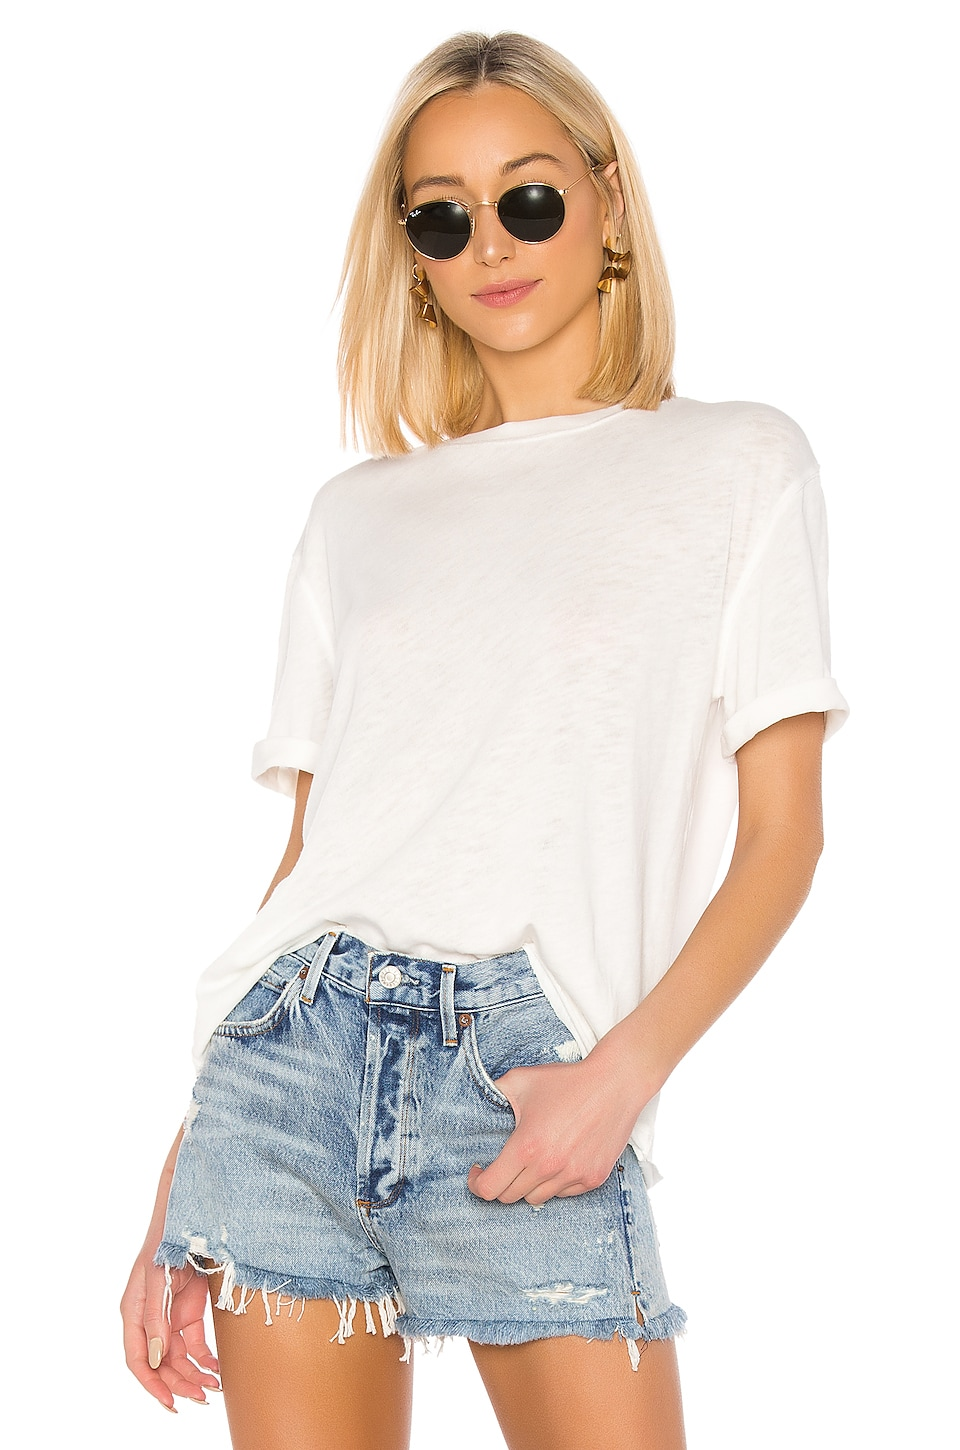 Free People Cassidy Tee in Ivory